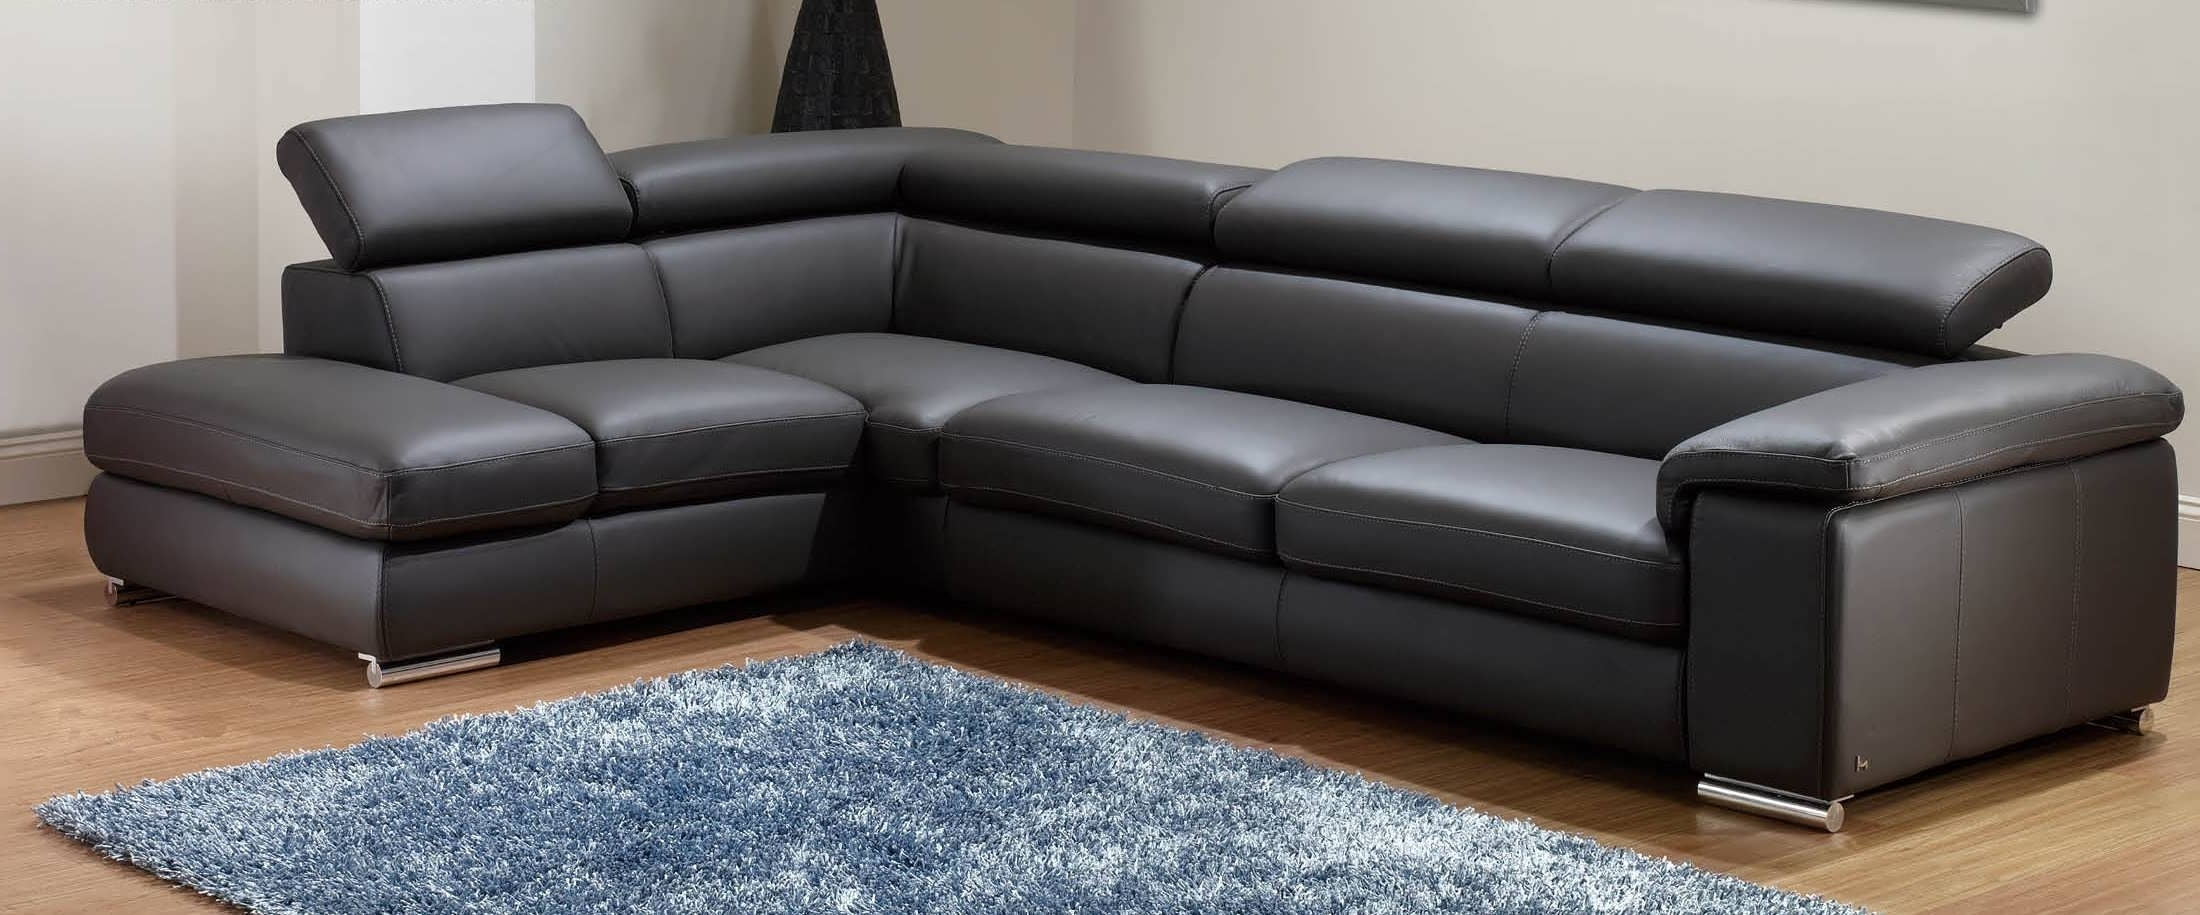 Small Sectionals With Chaise With 2017 Sofa : Chaise Sofa Double Chaise Sectional Small L Shaped Couch (View 13 of 15)